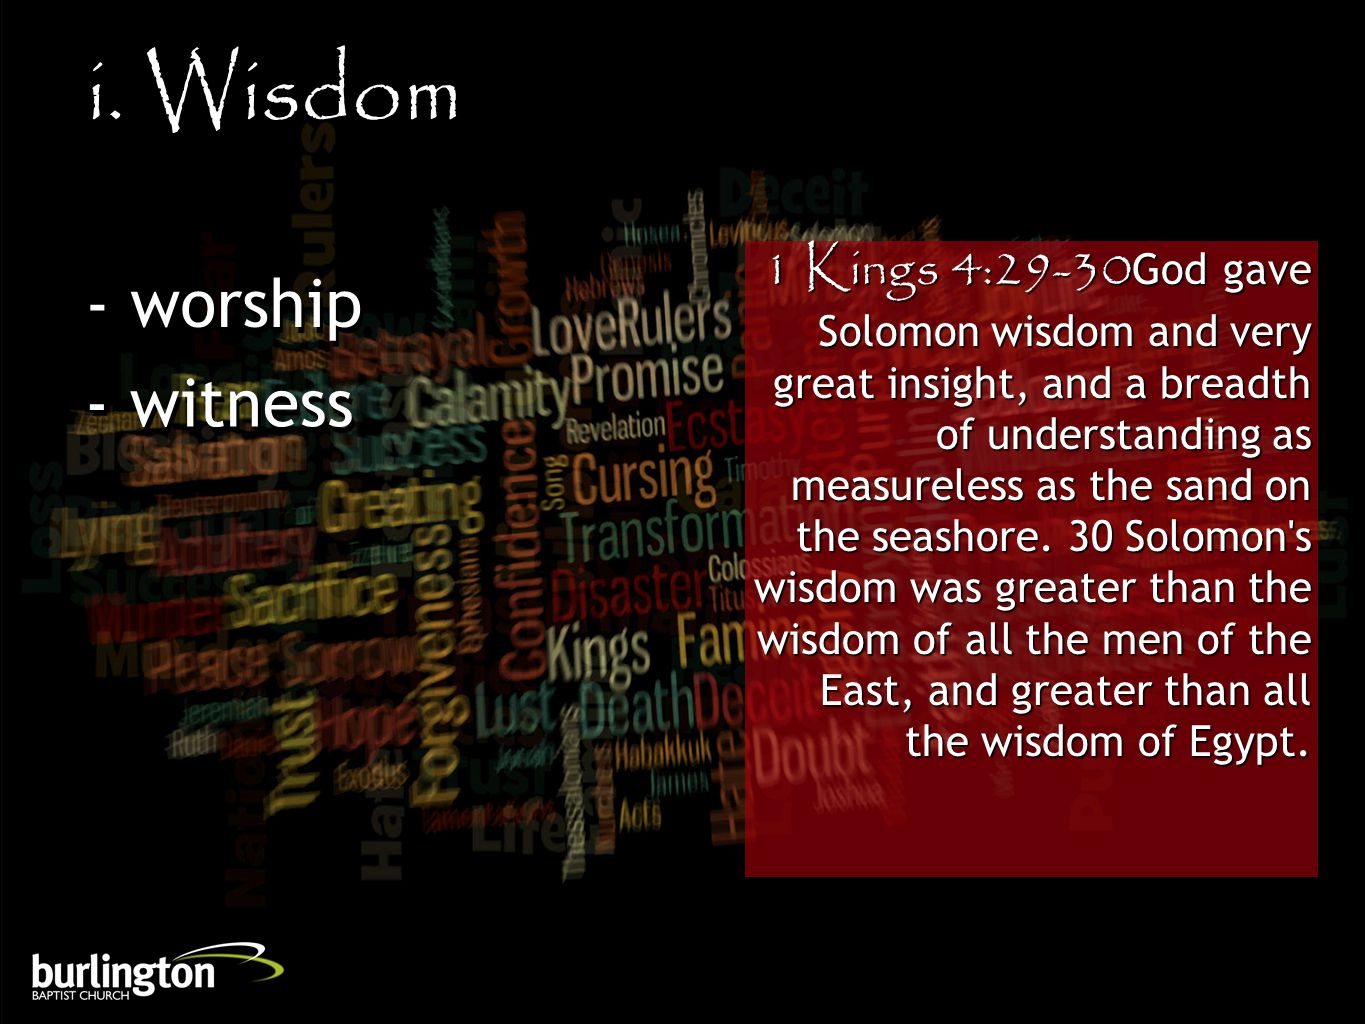 1 Kings 4:29-30God gave Solomon wisdom and very great insight, and a breadth of understanding as measureless as the sand on the seashore. 30 Solomon's